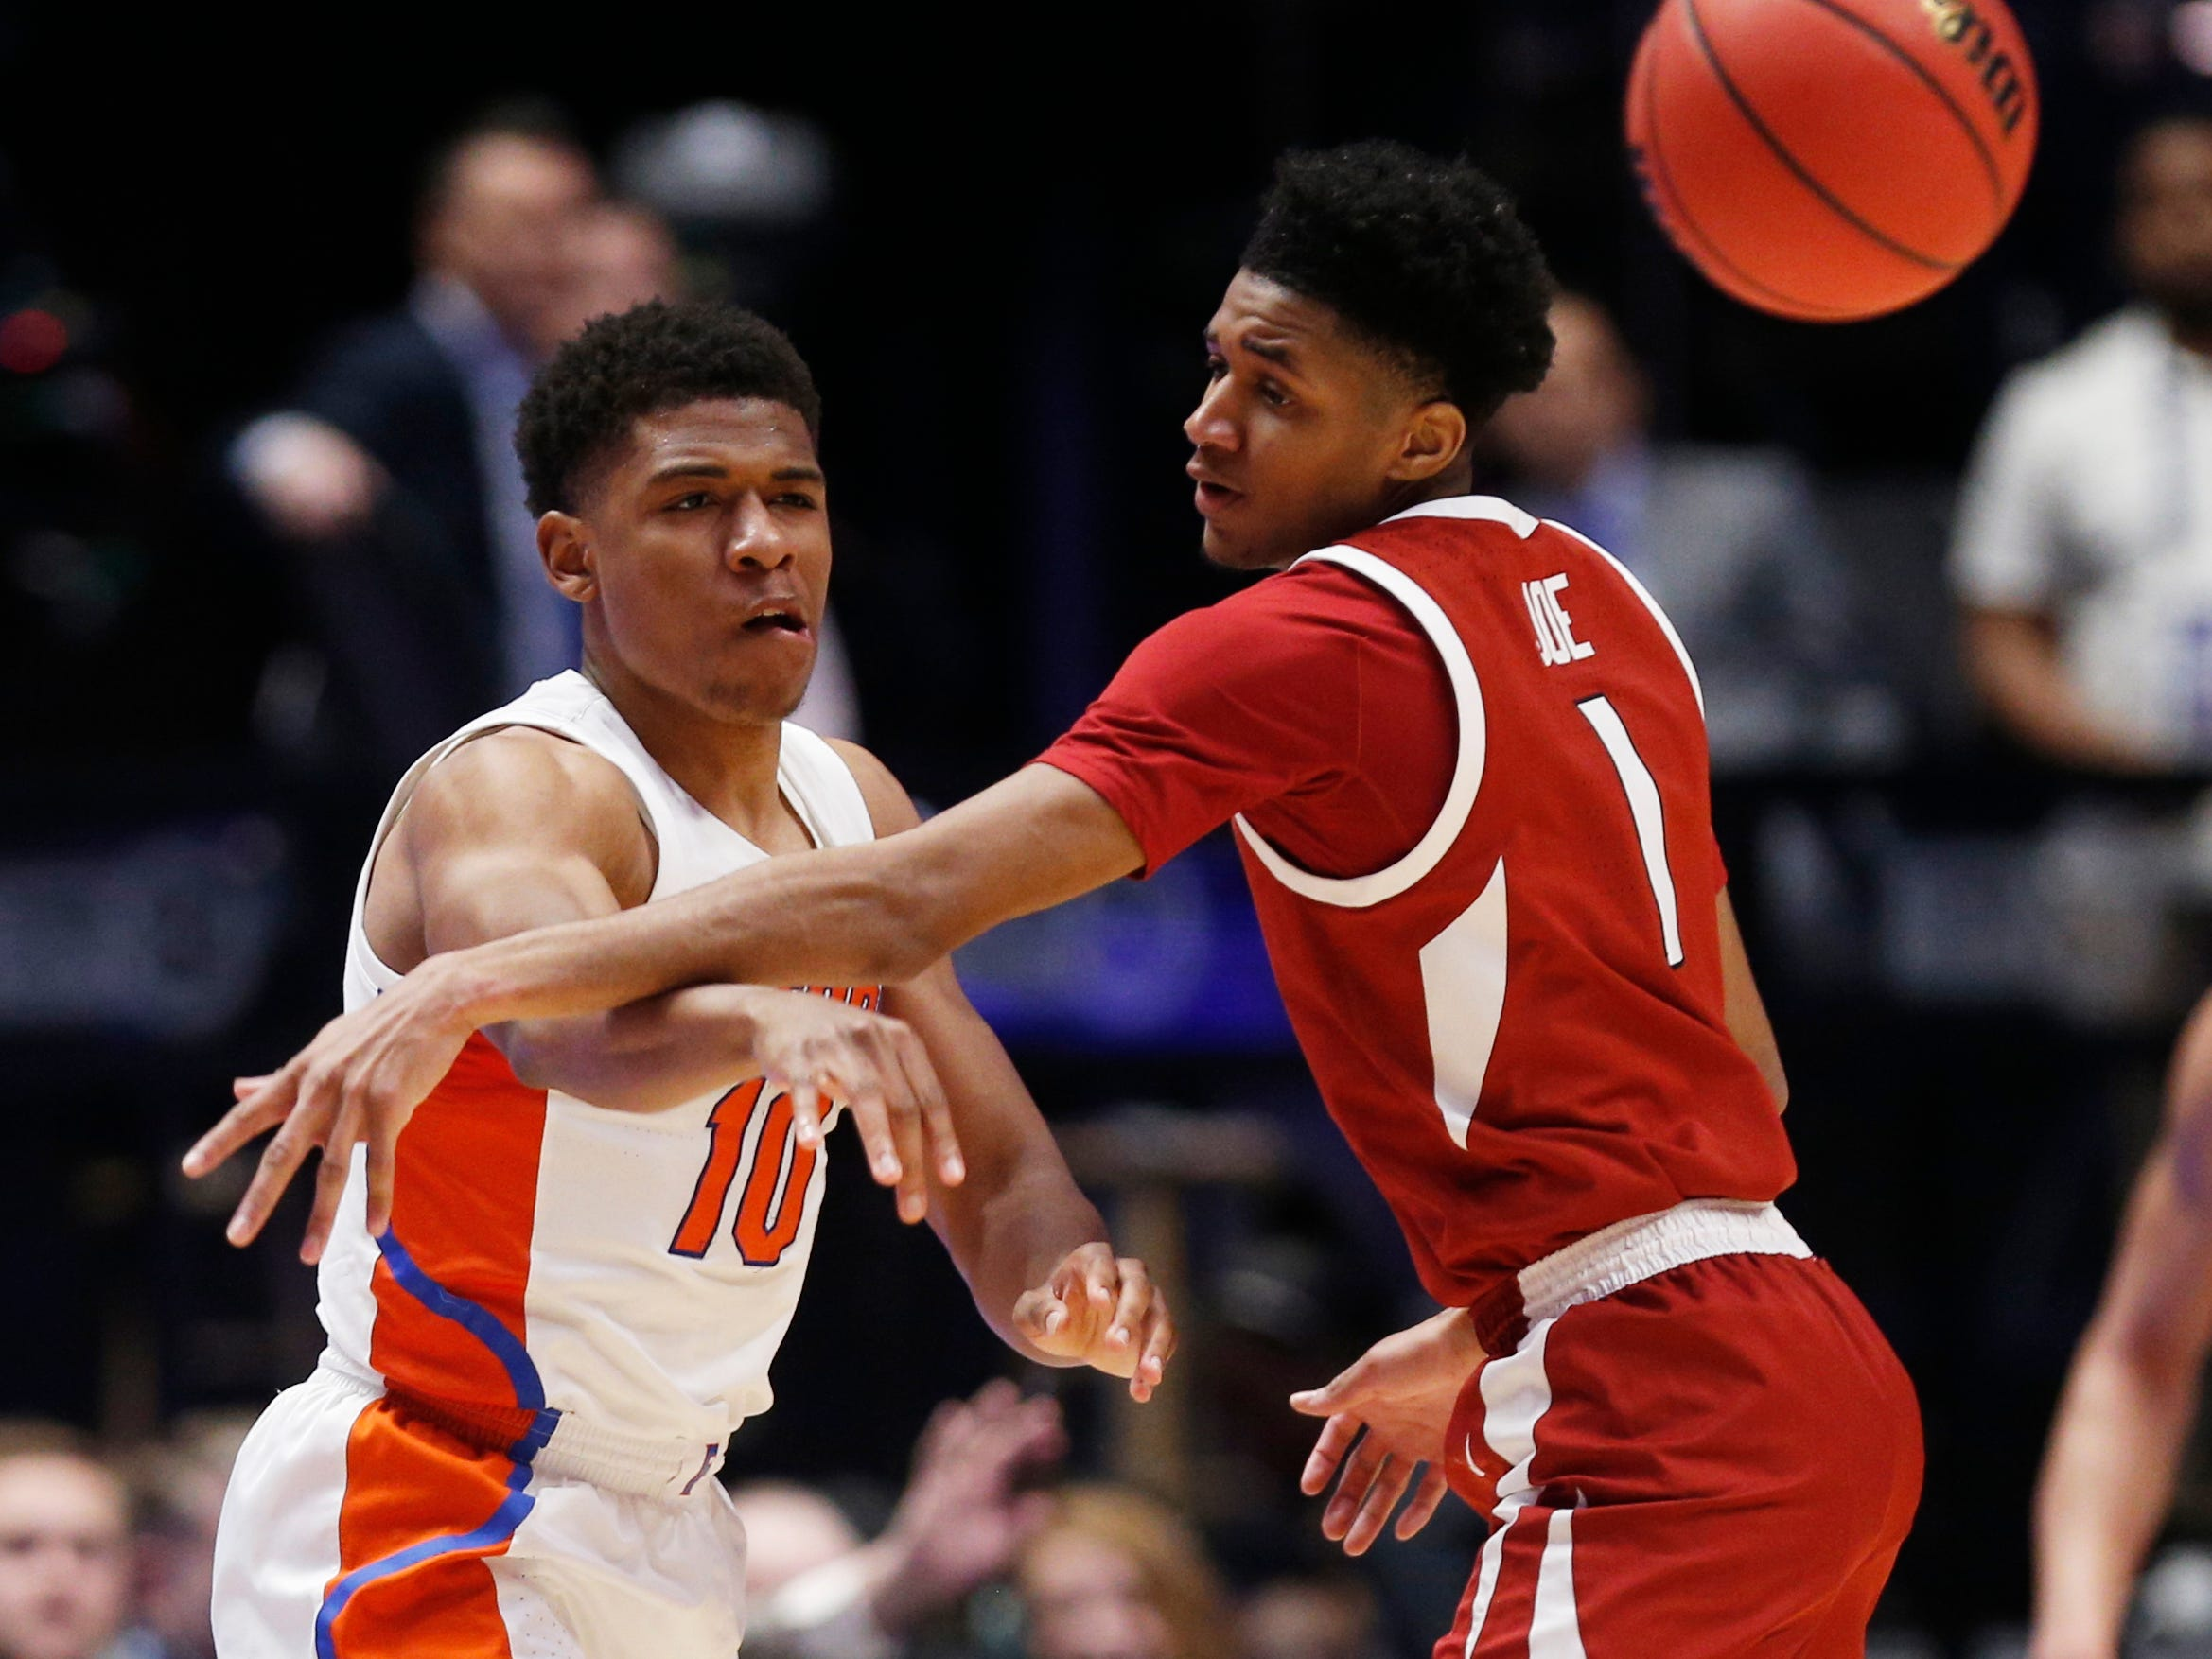 Florida guard Noah Locke (10) passes the ball around Arkansas guard Isaiah Joe (1) during the first half of the SEC Men's Basketball Tournament game at Bridgestone Arena in Nashville, Tenn., Thursday, March 14, 2019.